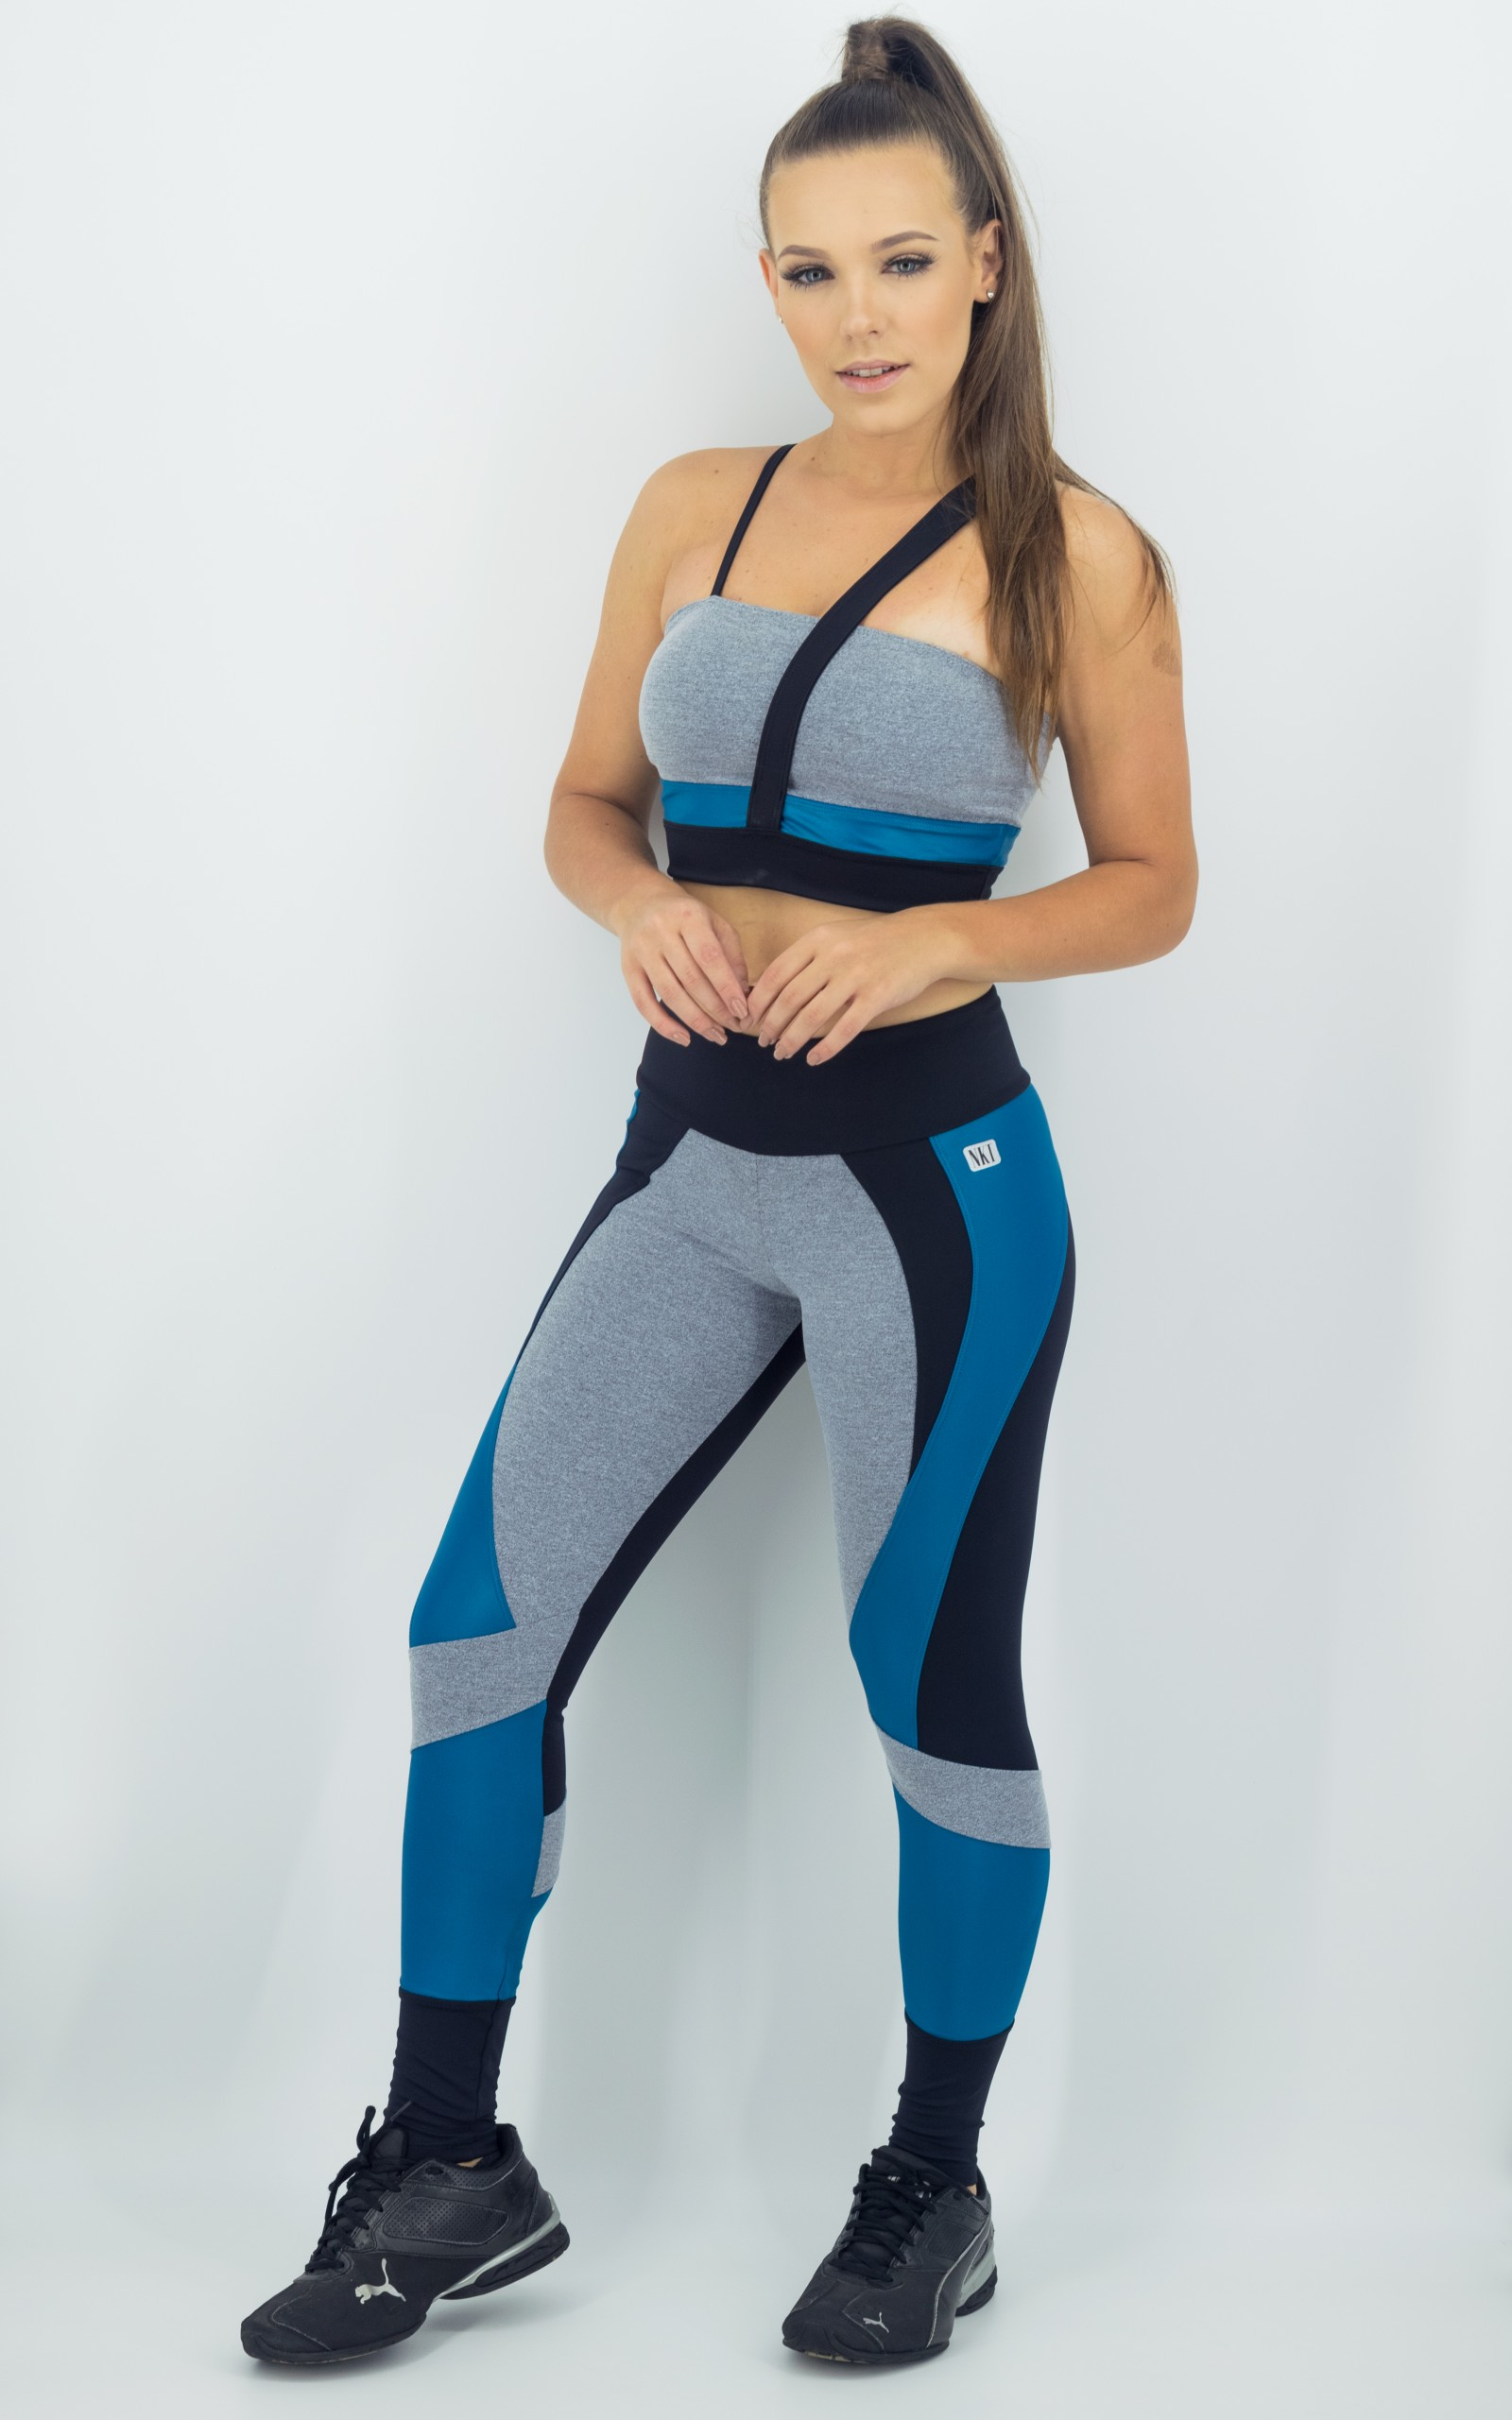 Top Fullness Mescla, Coleção Move Your Body - NKT Fitwear Moda Fitness